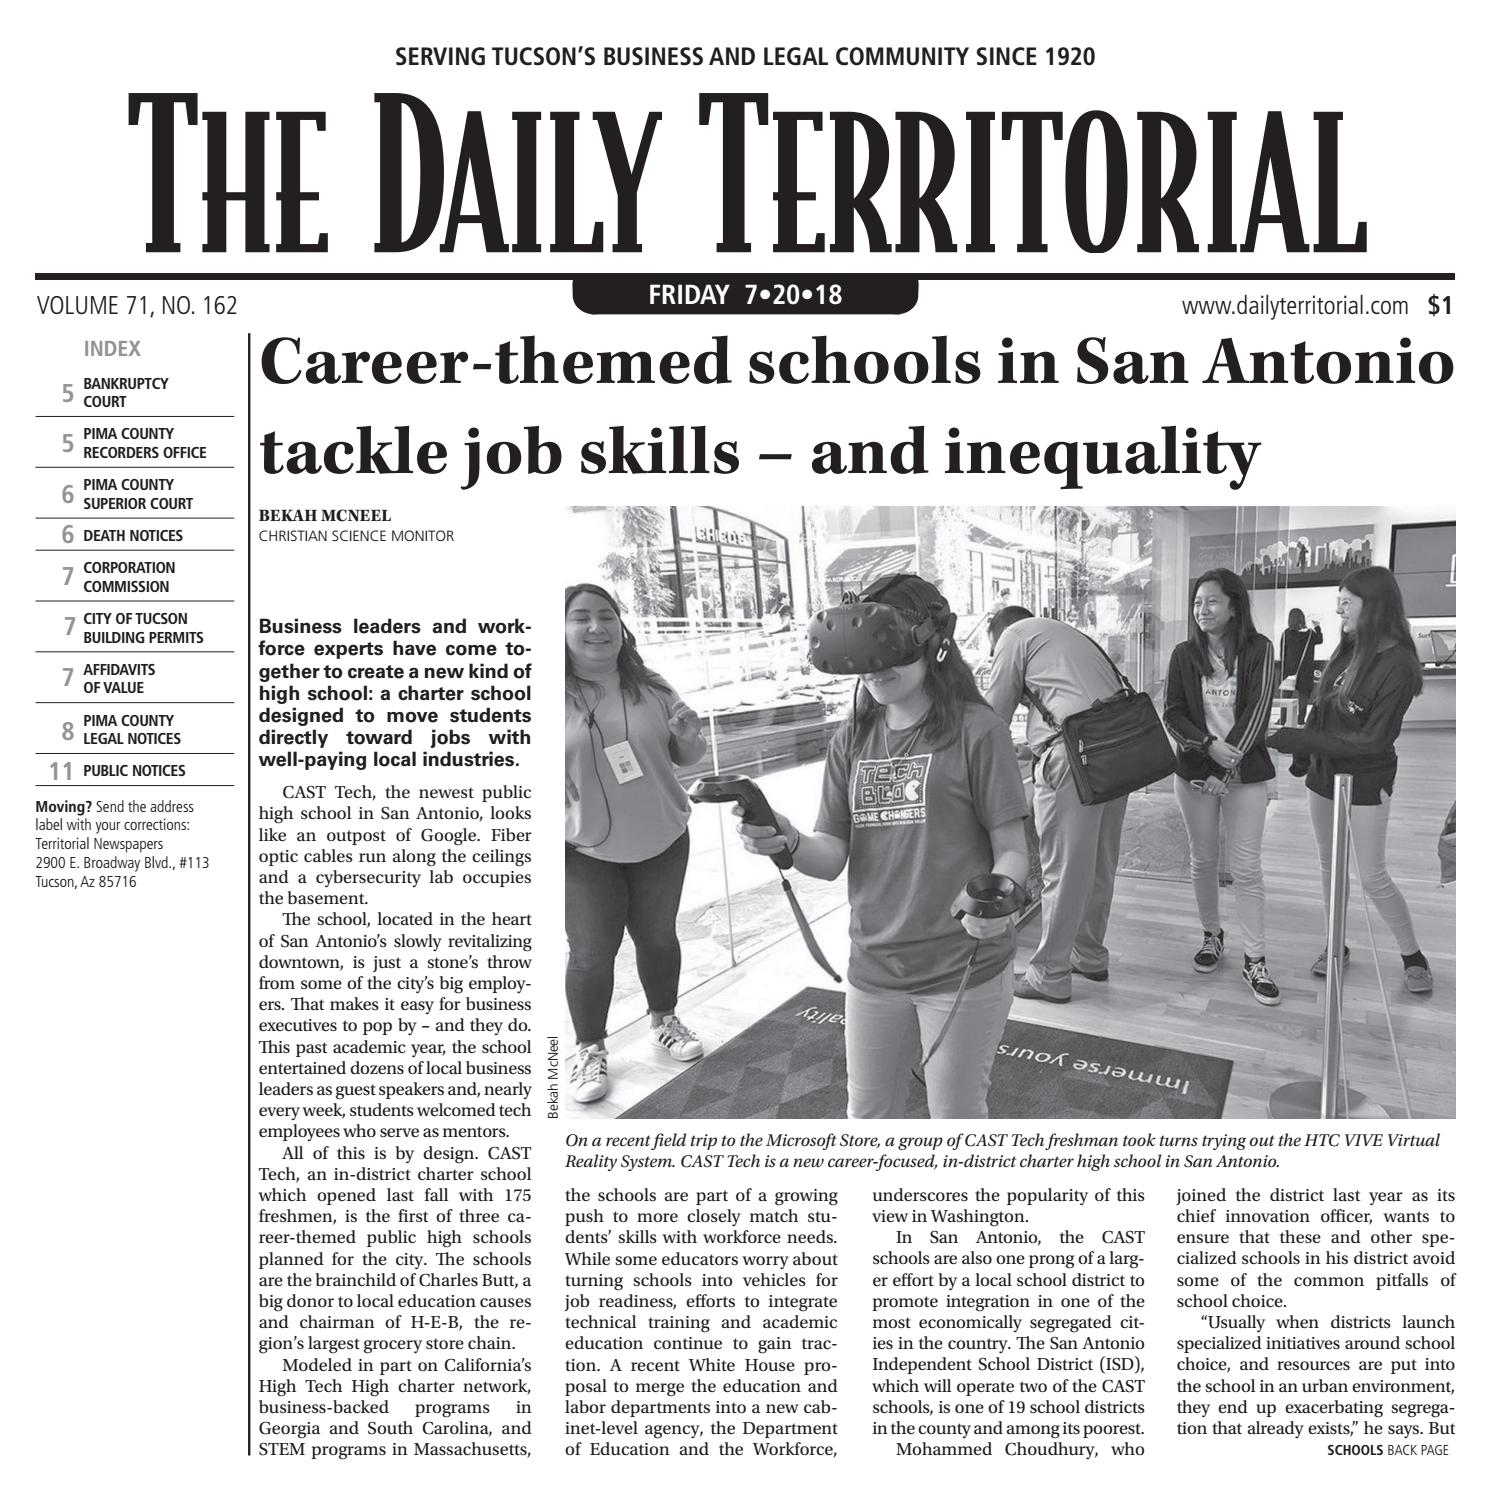 The Daily Territorial 072018 by Wick Communications - issuu